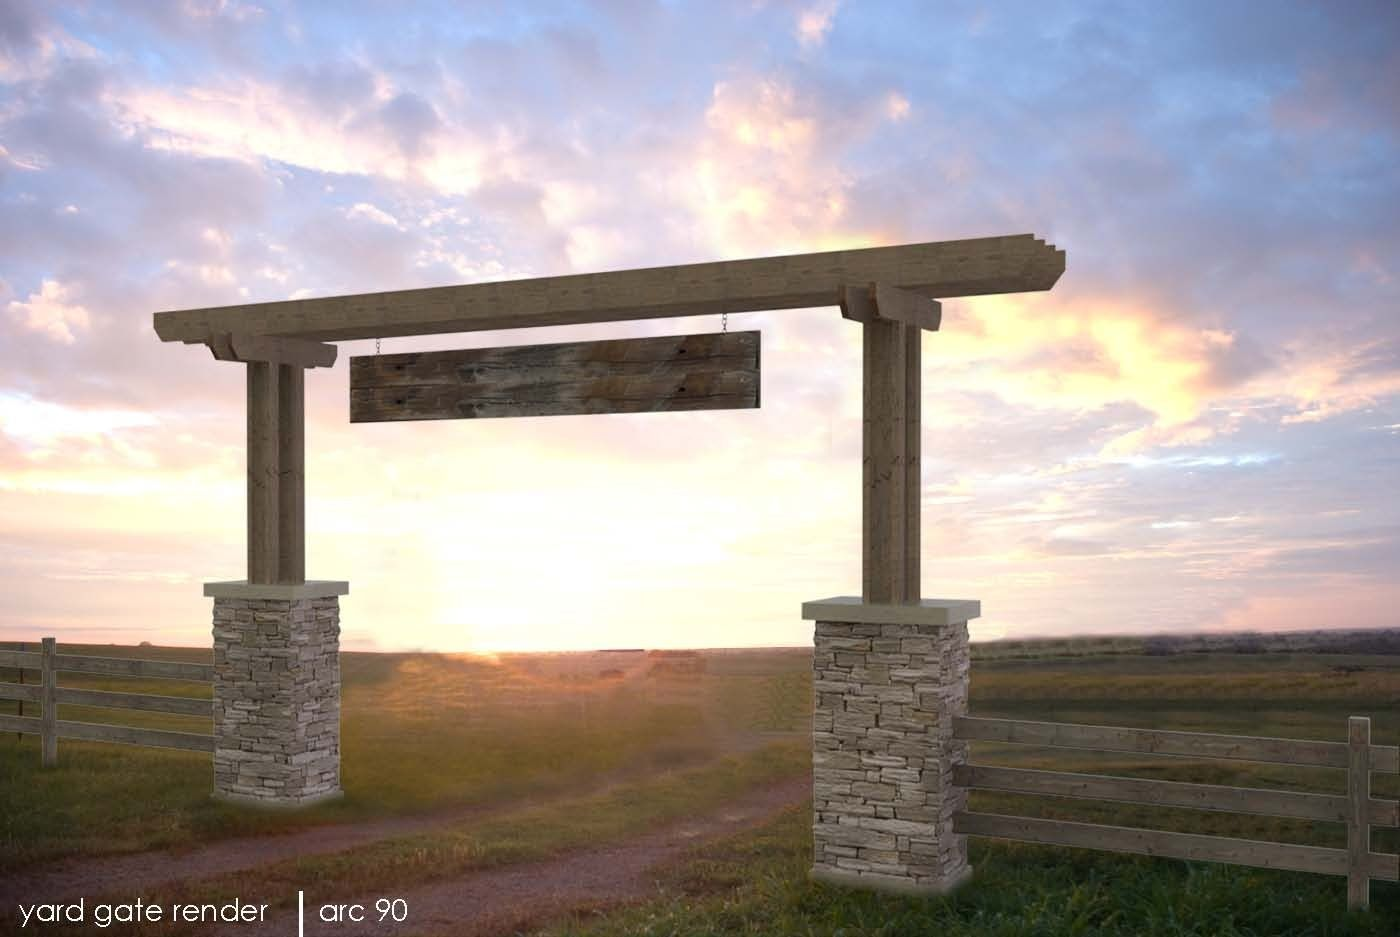 Ranch entrance ideas david heaton ranch entry gate for Ranch entrance designs